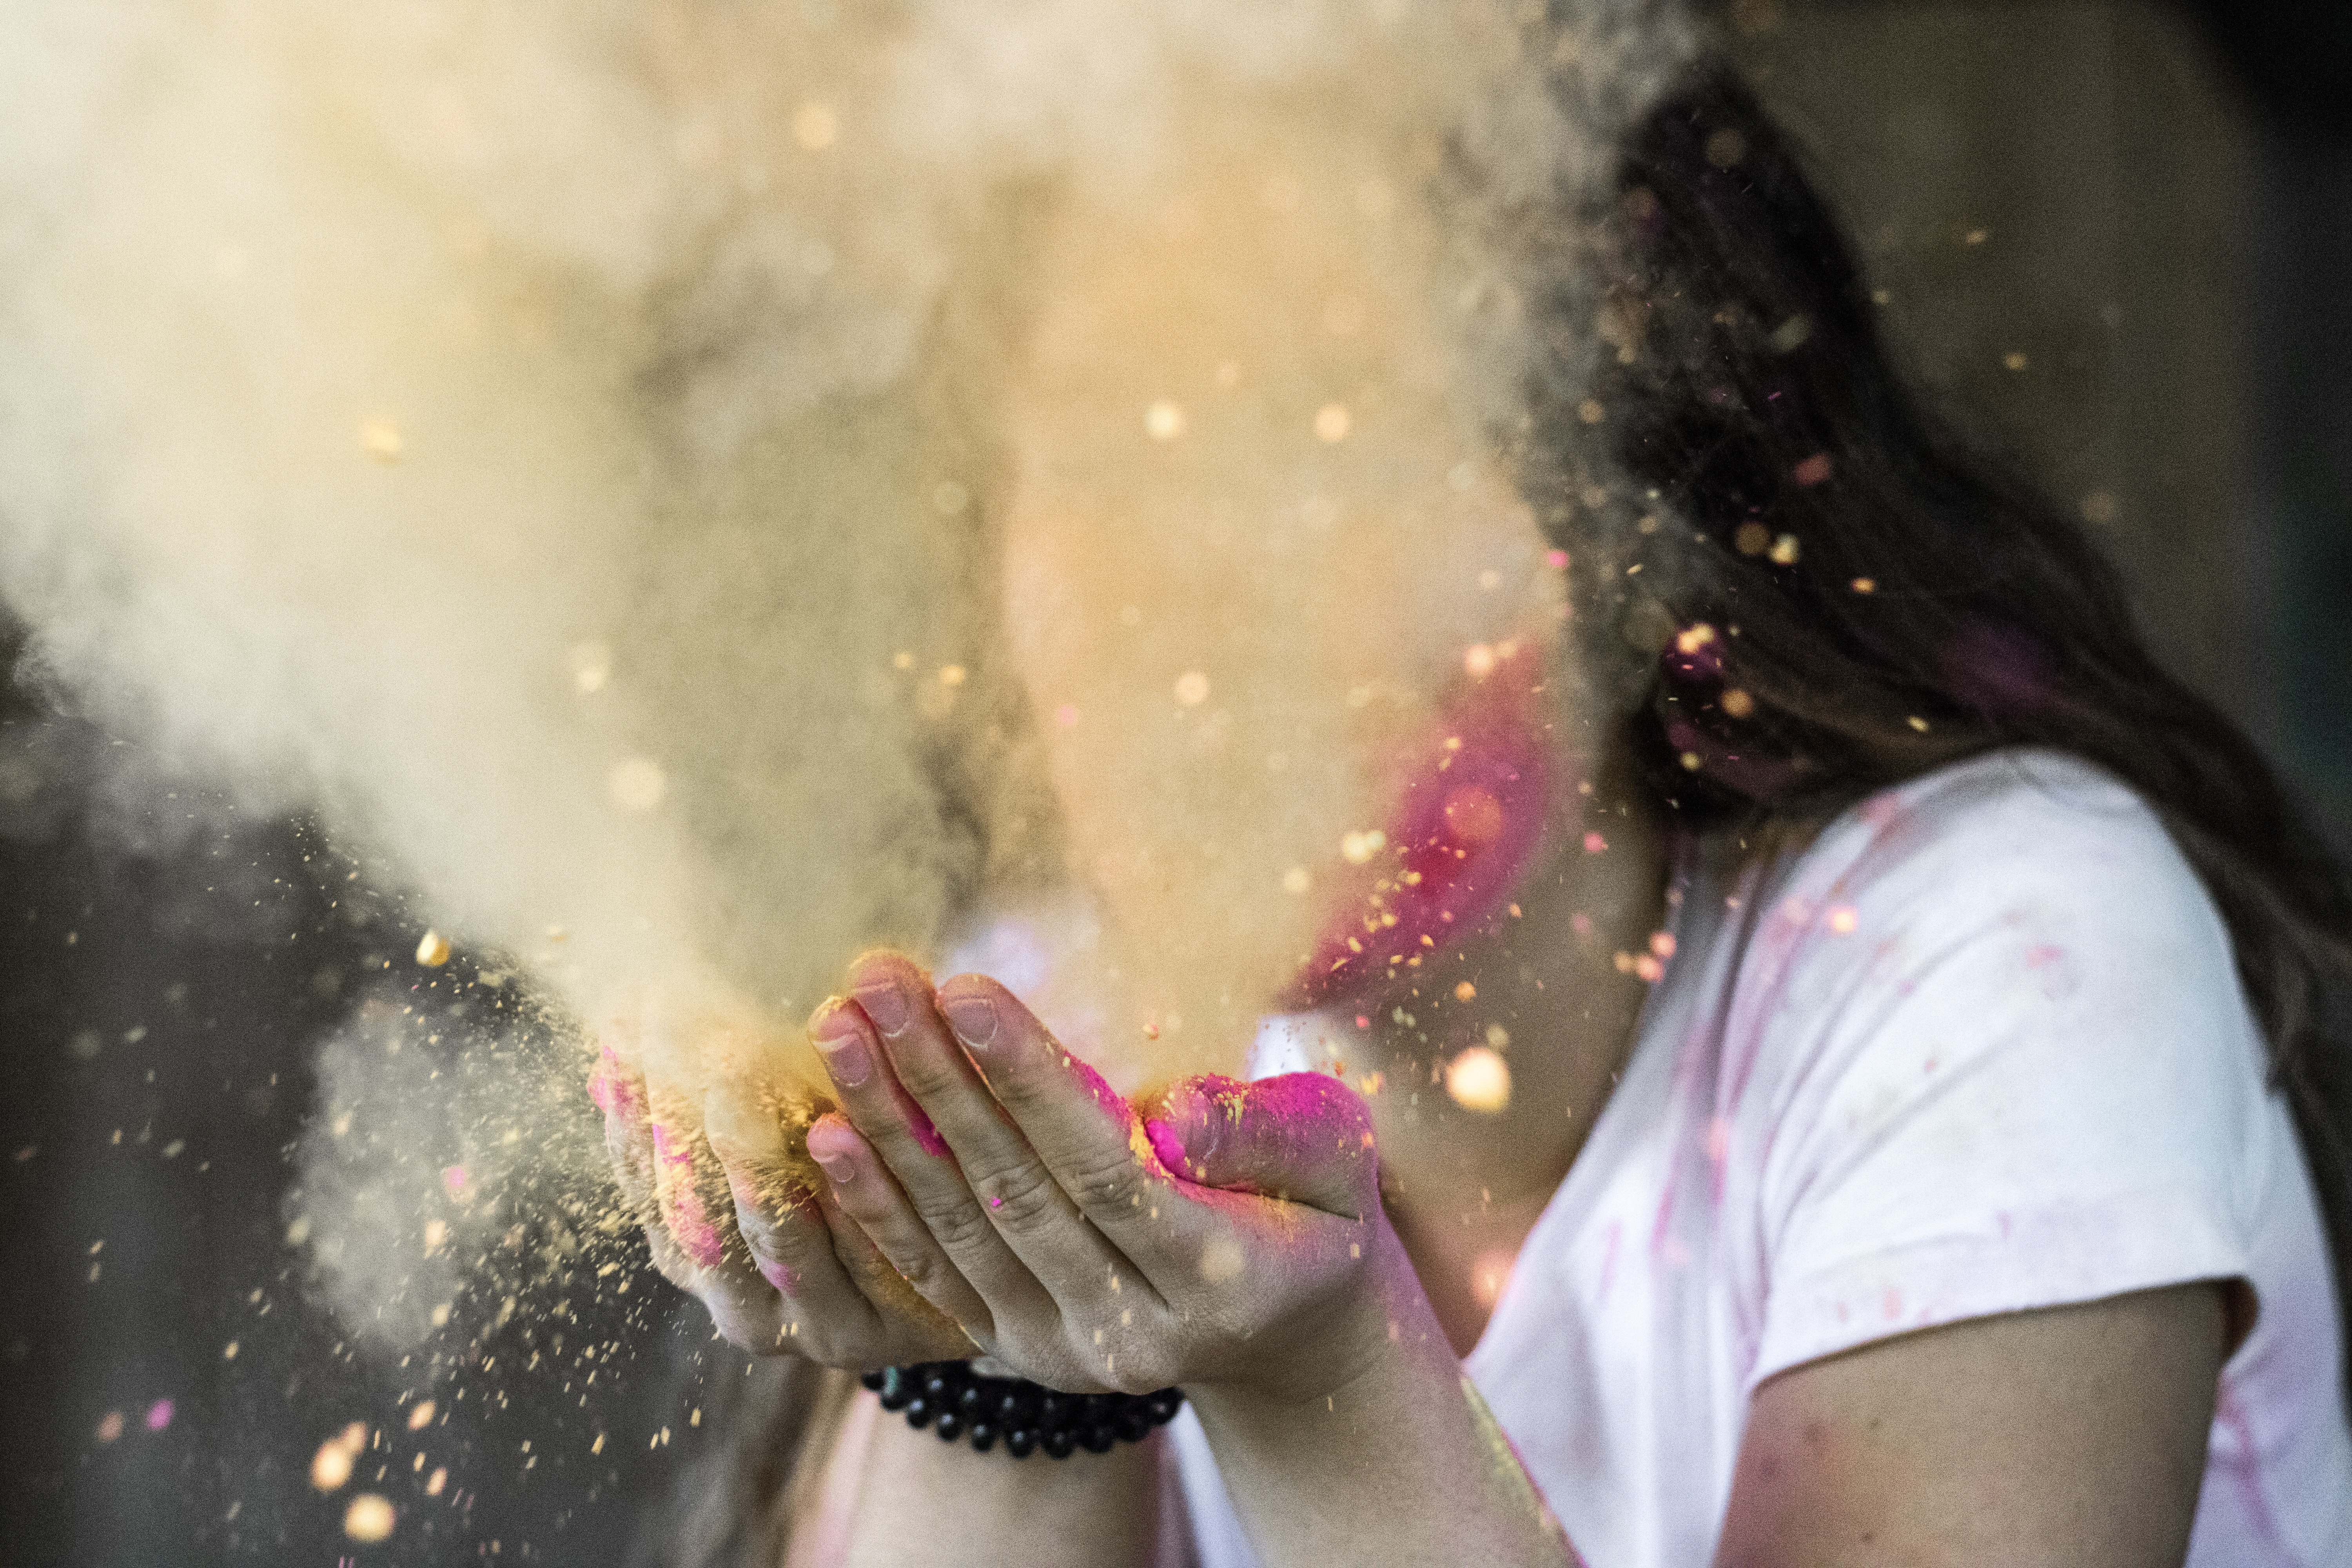 Woman in White Cap-sleeved Shirt Blowing Dust, Music, Woman, Water, Wallpaper, HQ Photo